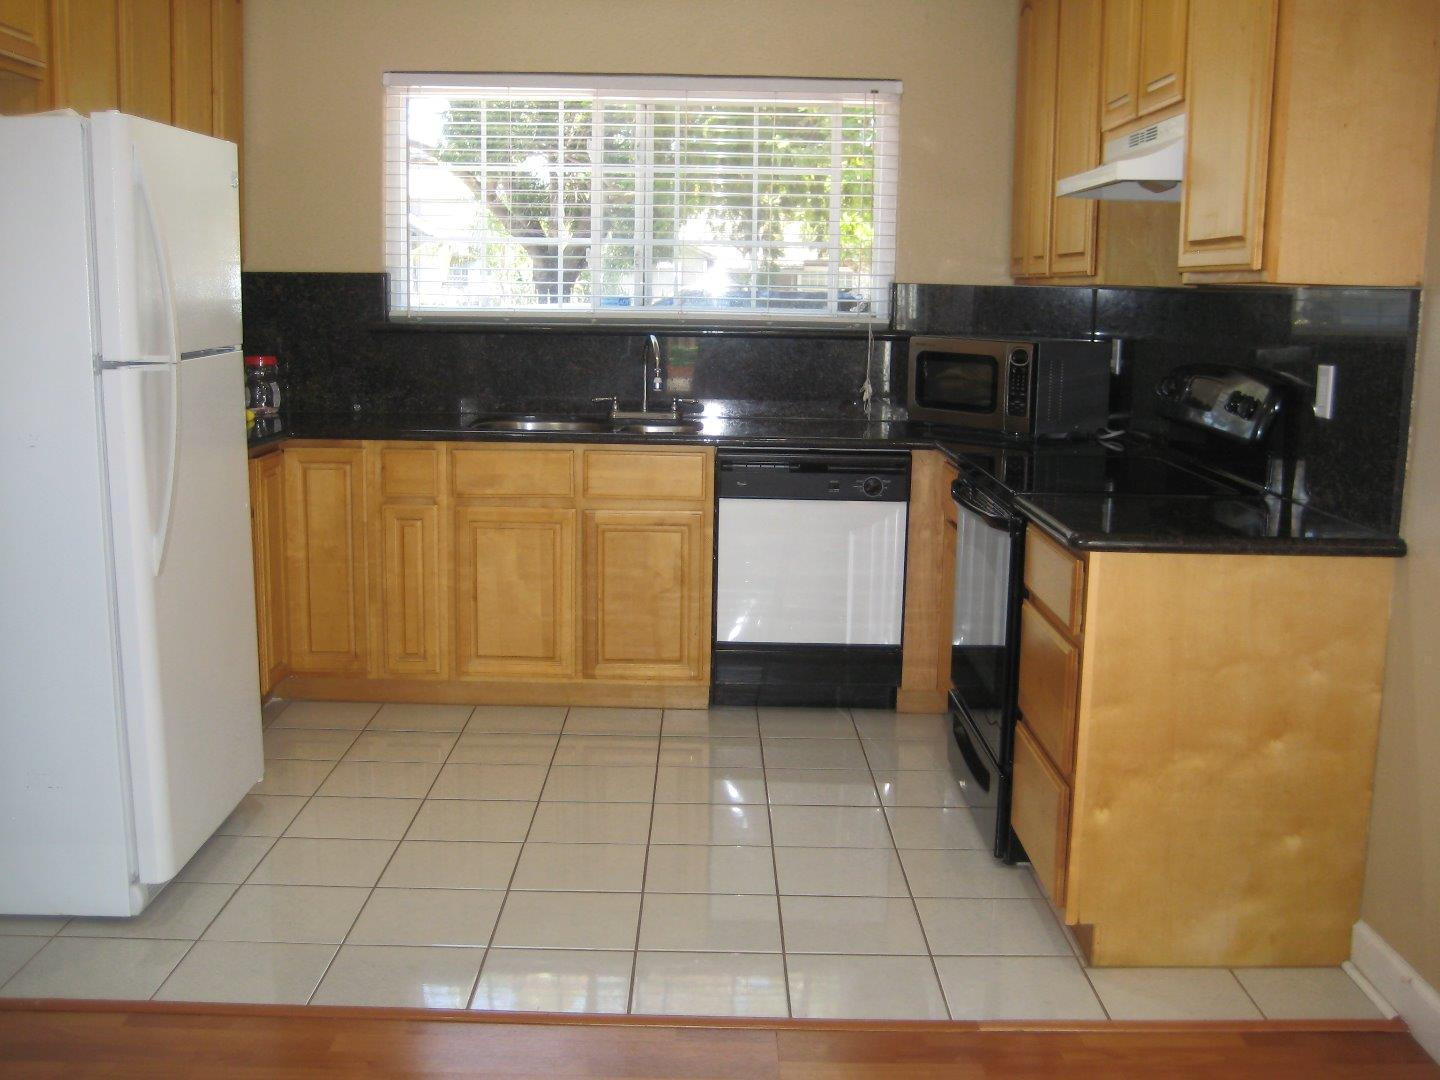 Additional photo for property listing at 1841 Mclaughlin Avenue  San Jose, California 95122 United States